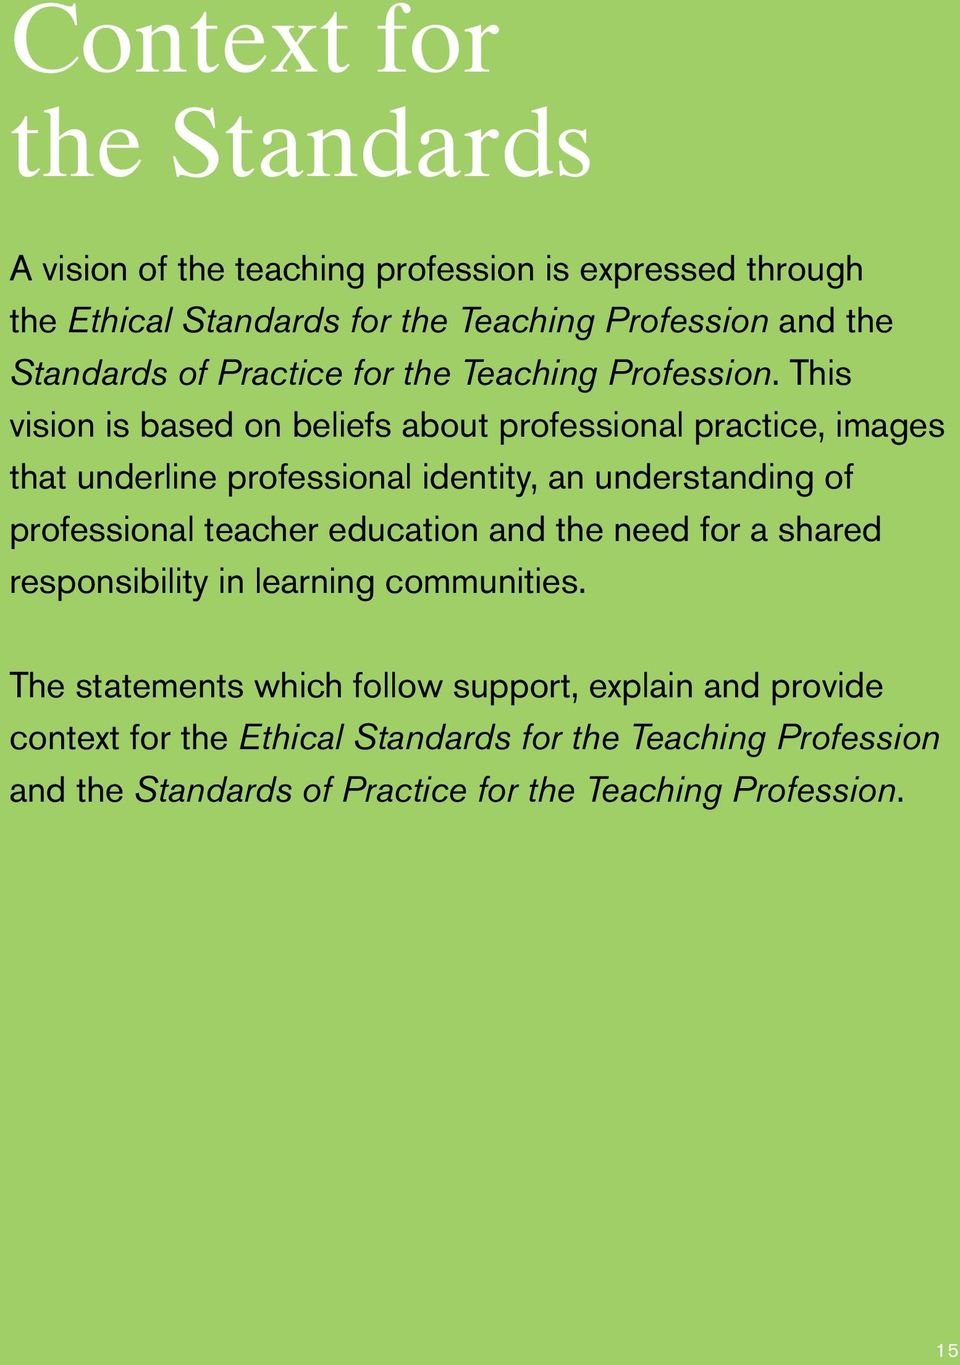 This vision is based on beliefs about professional practice, images that underline professional identity, an understanding of professional teacher